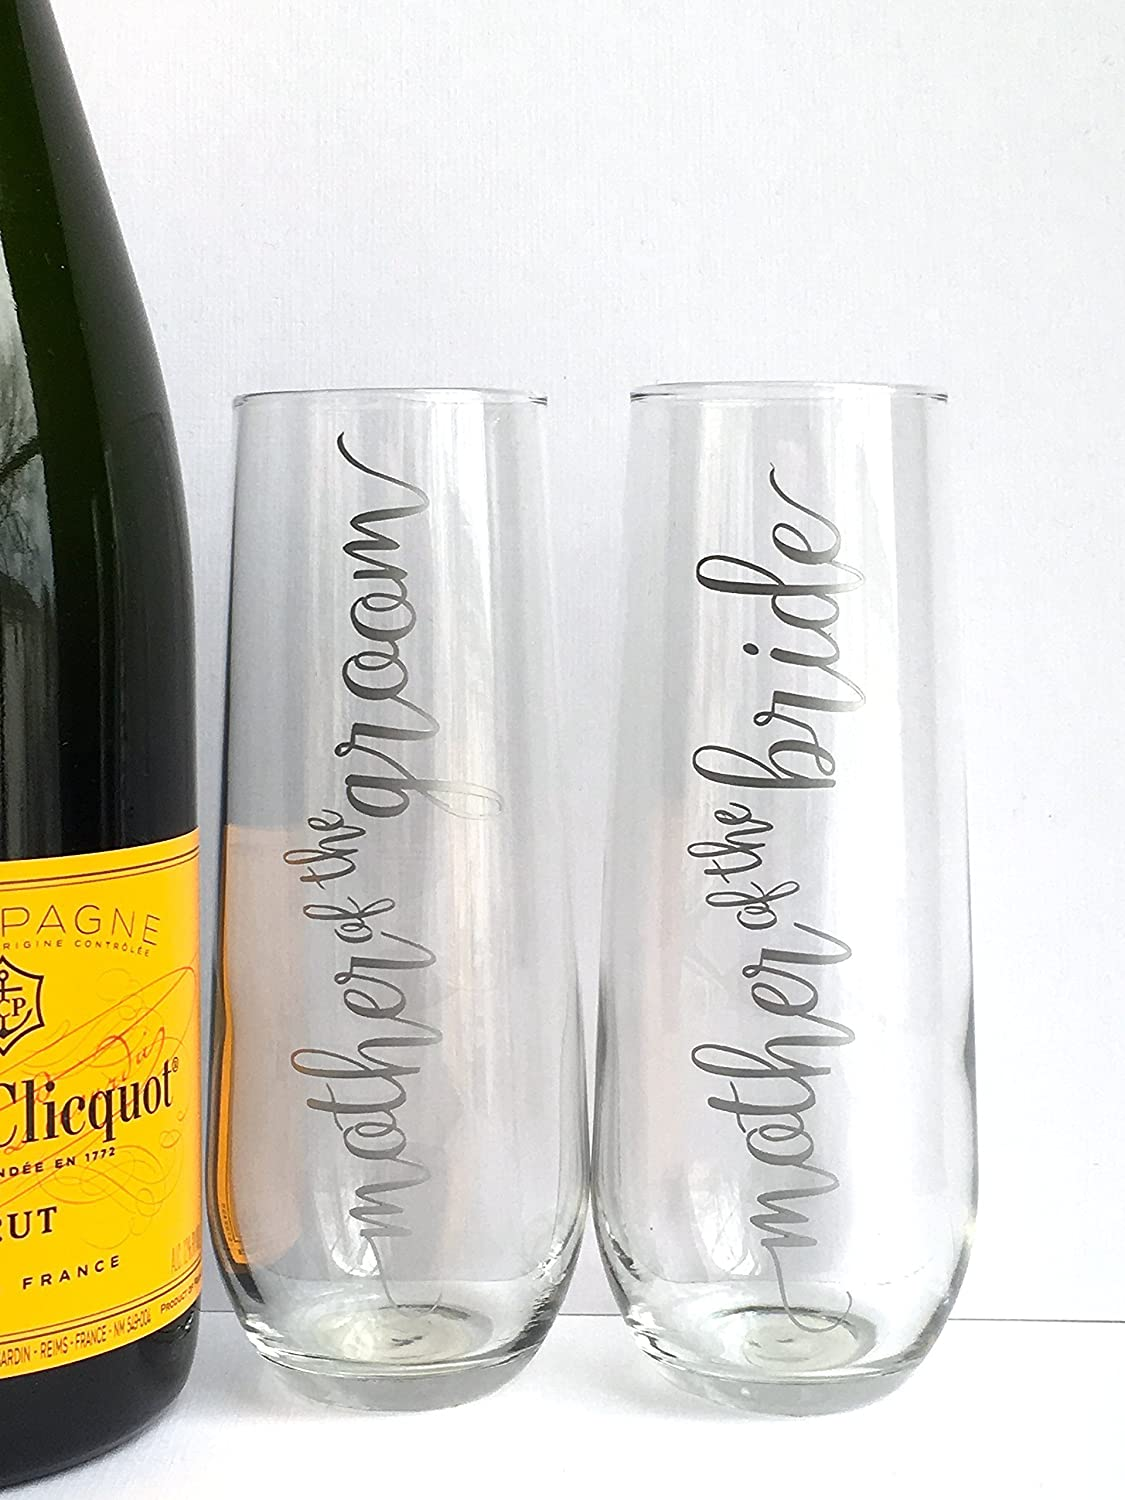 Personalized Champagne Flutes for the Bridal Party - Bridesmaid - Maid of Honor - Bride - Mother of the Groom and Bride